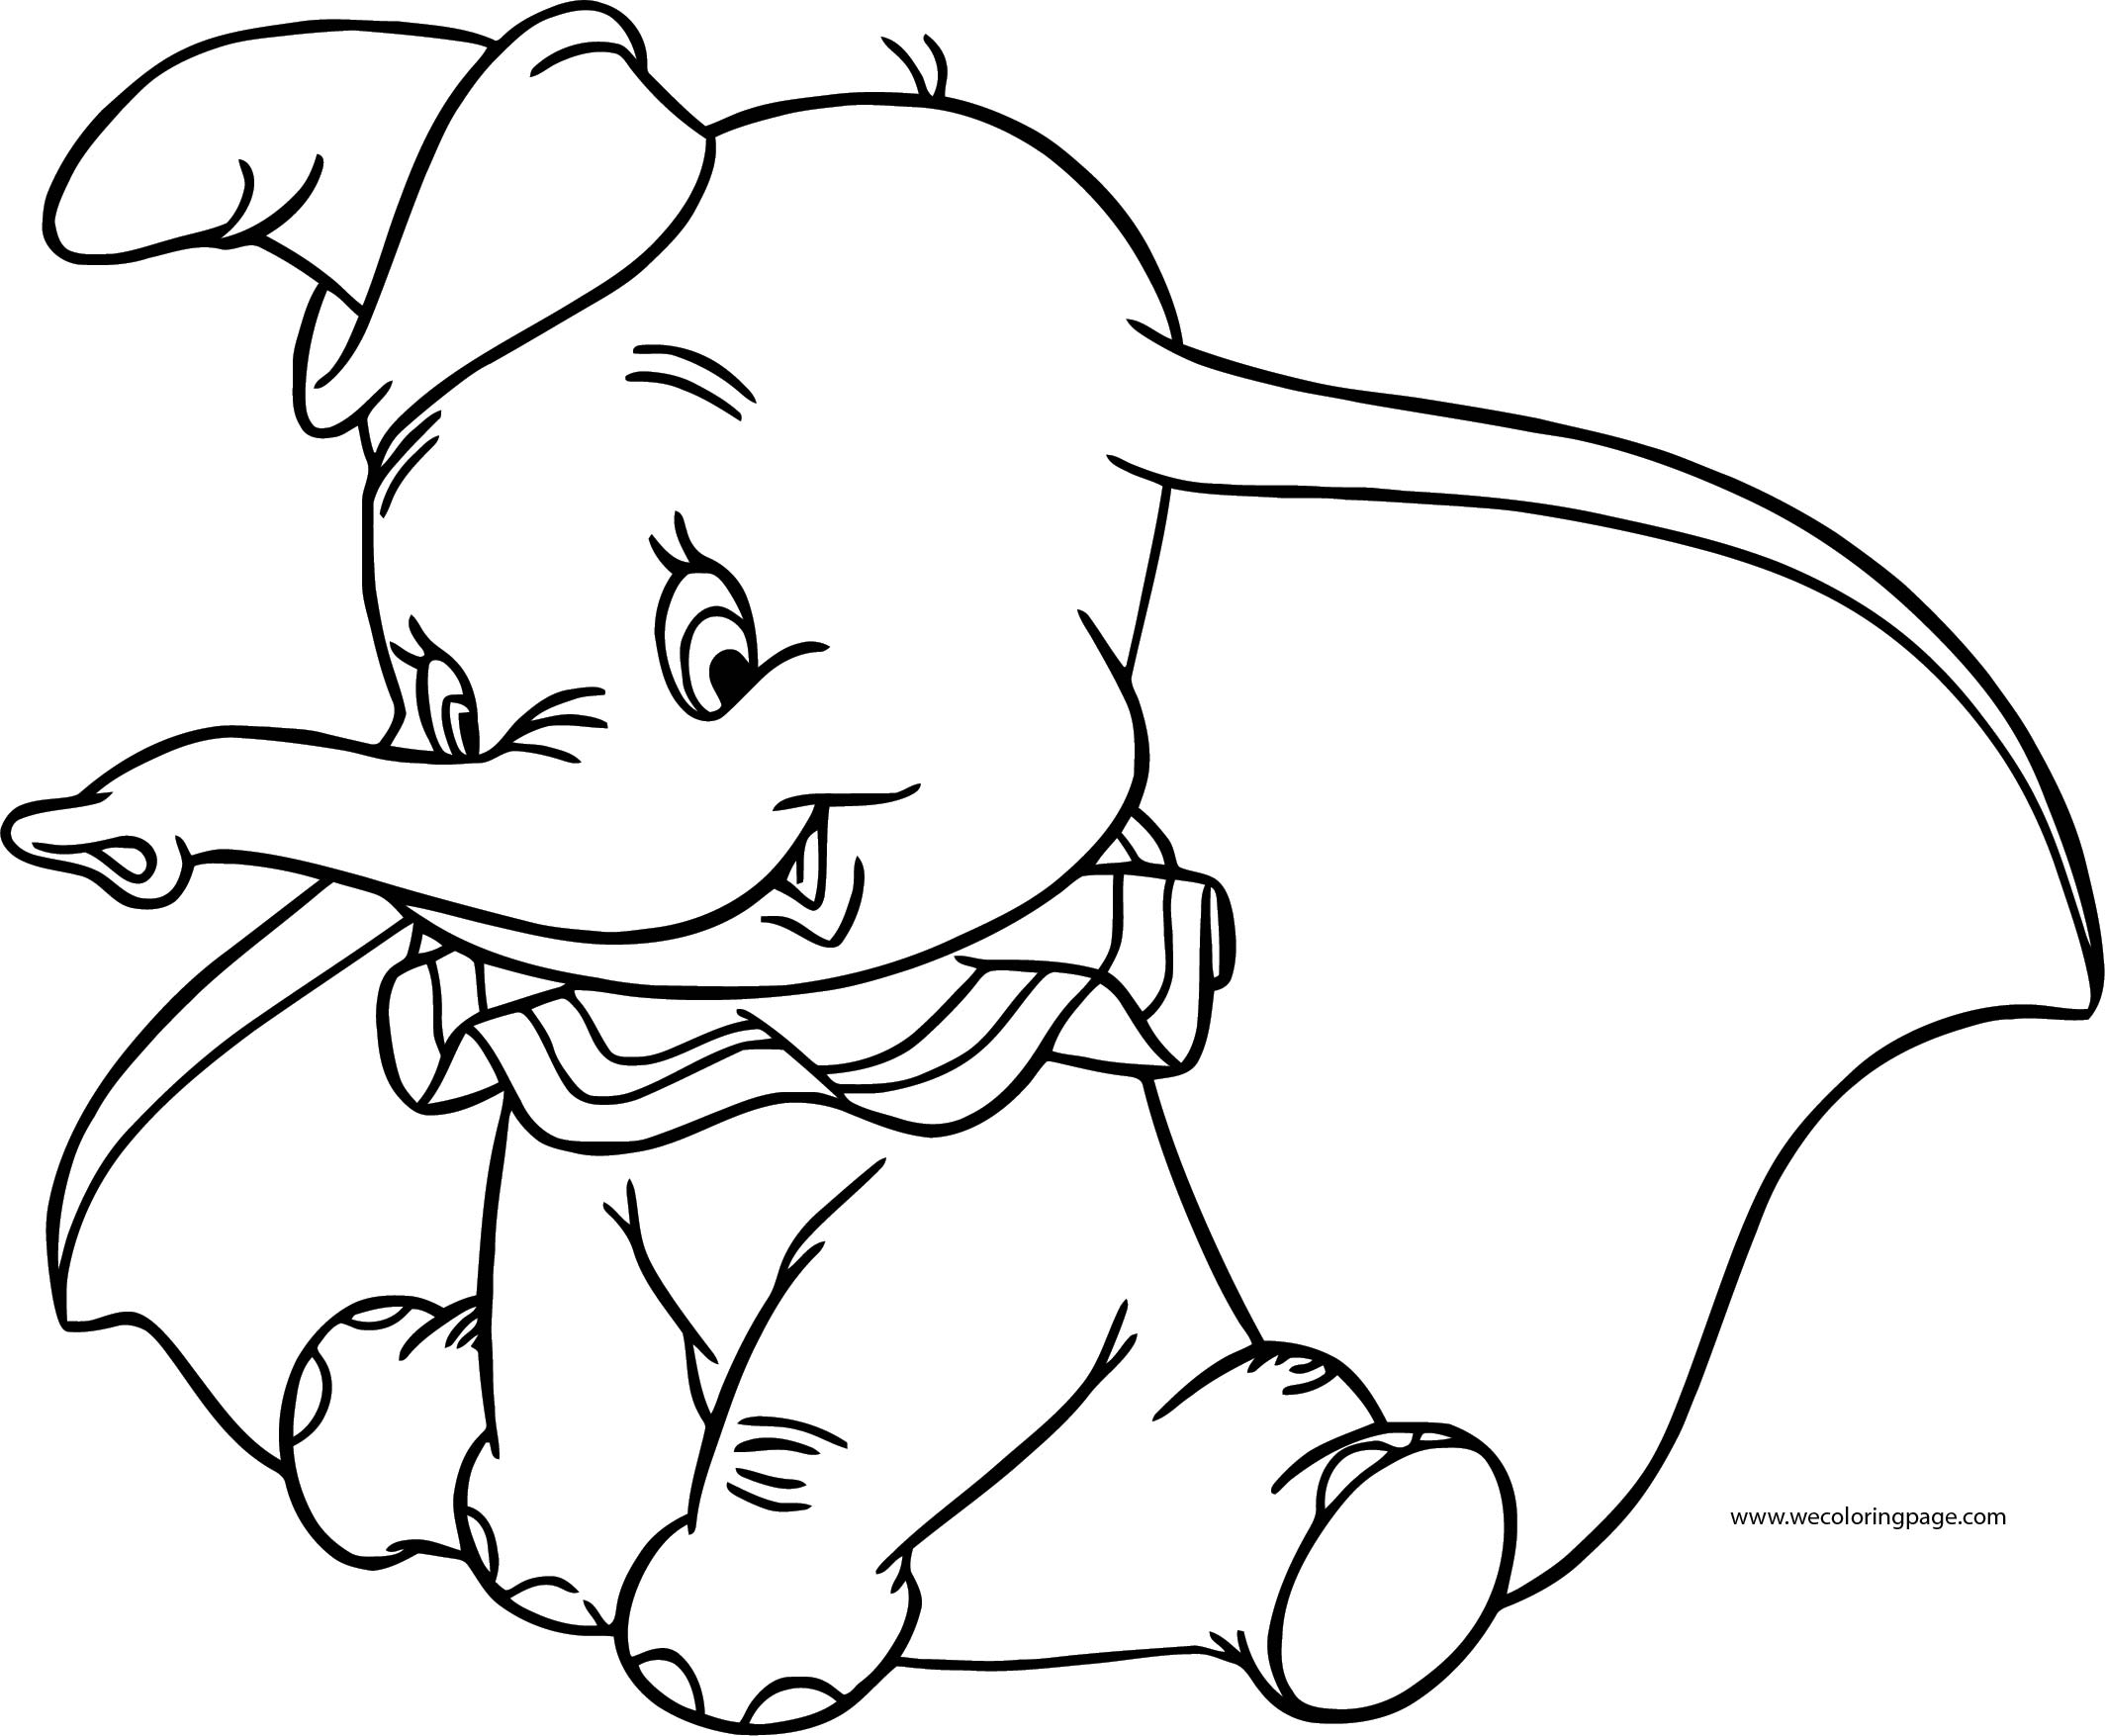 Dumbo Cute Coloring Pages 2 | Wecoloringpage.com